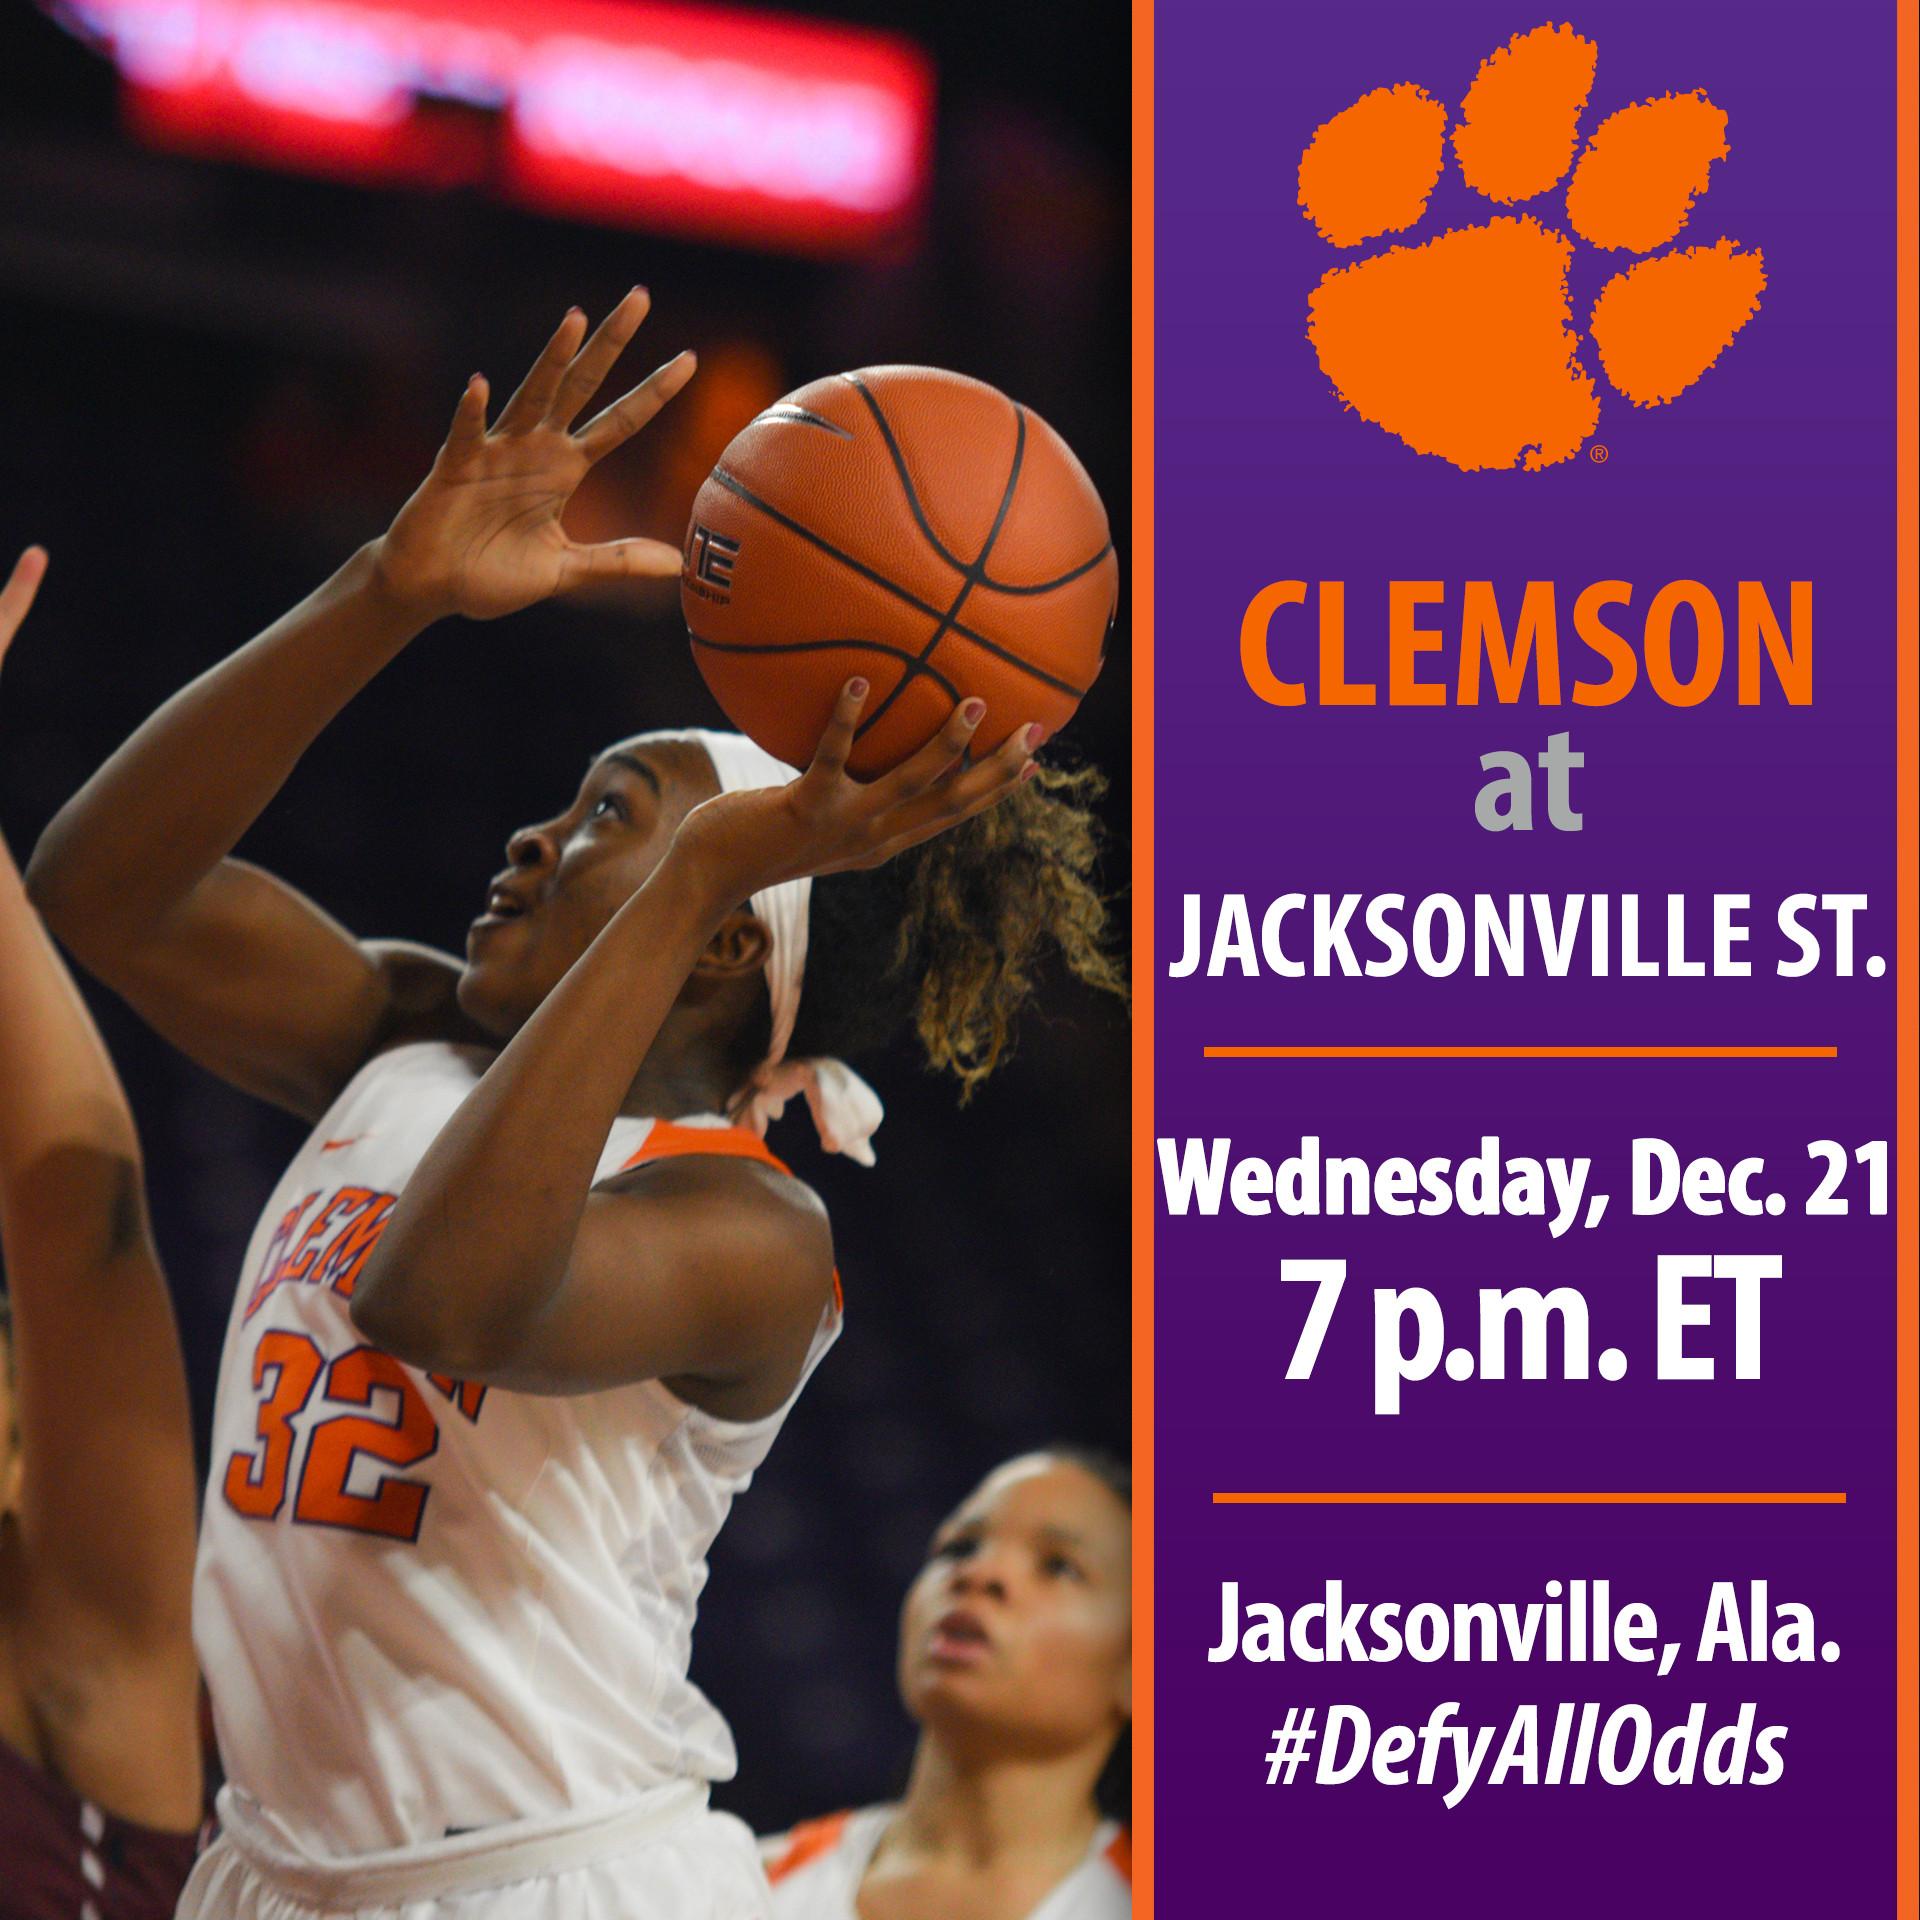 Clemson Travels to Alabama to Face Jacksonville State Wednesday